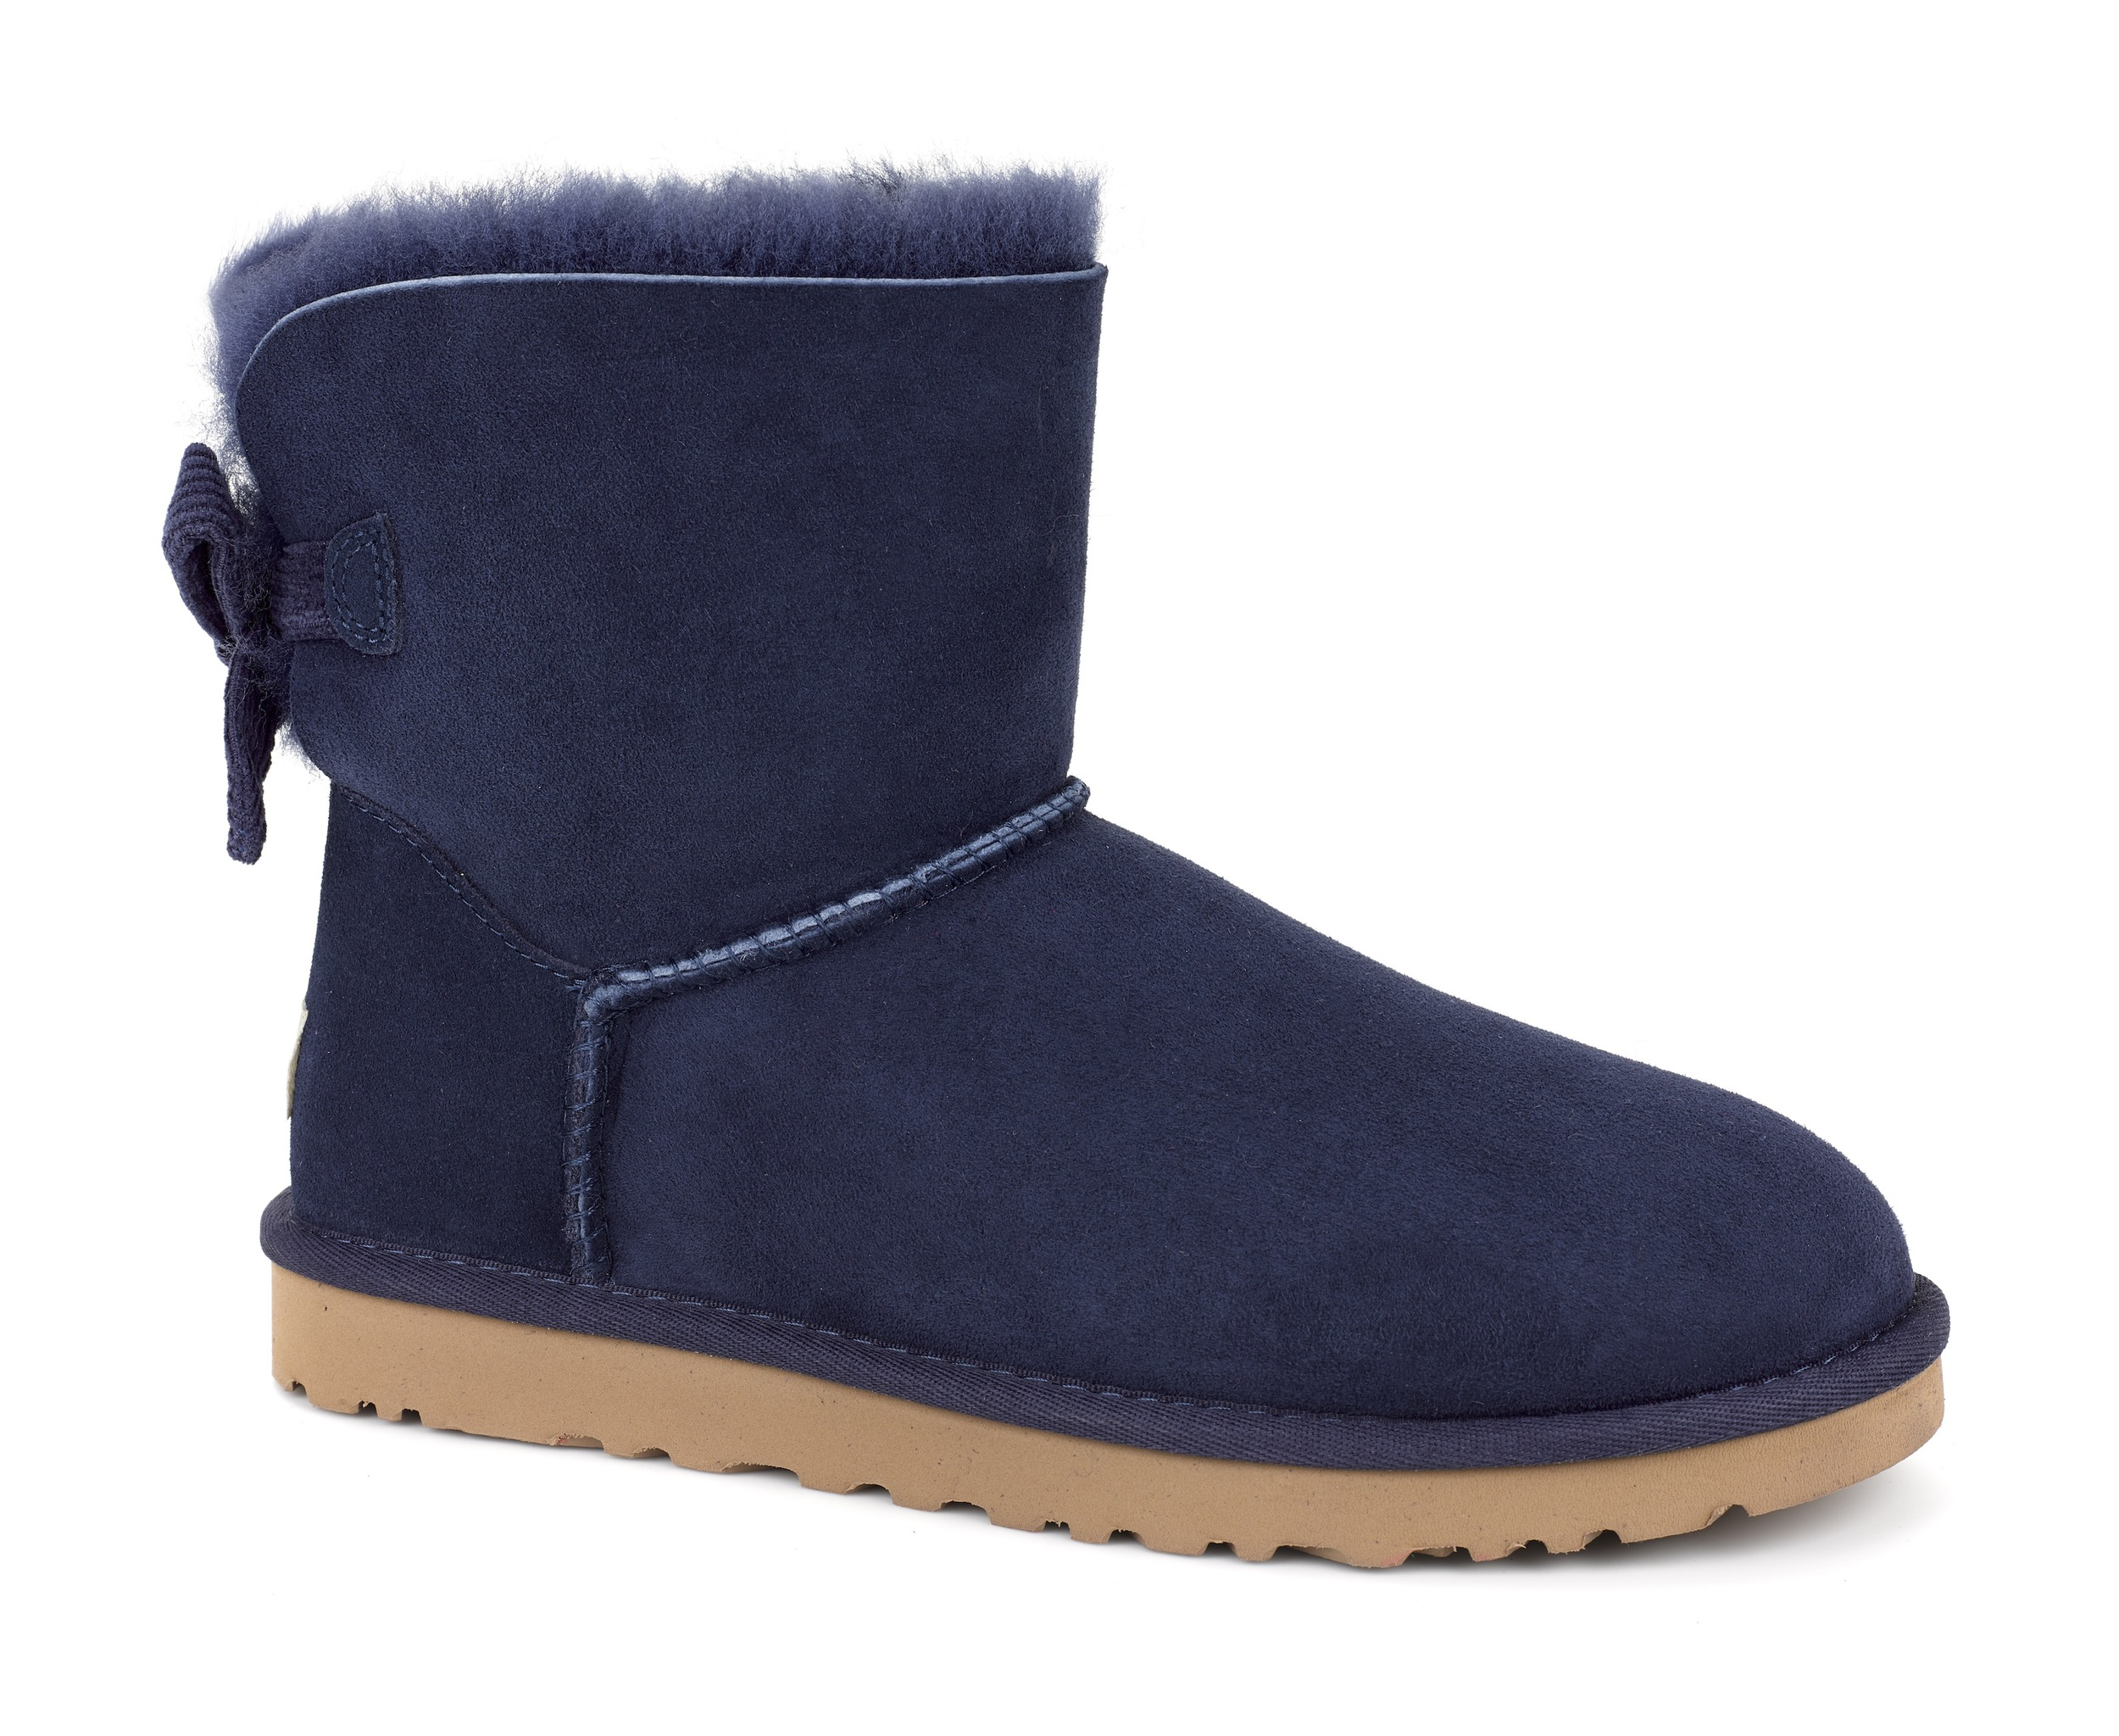 UGG_Mini_Bailey_Bow_Corduroy_Peacoat_$2090.jpg